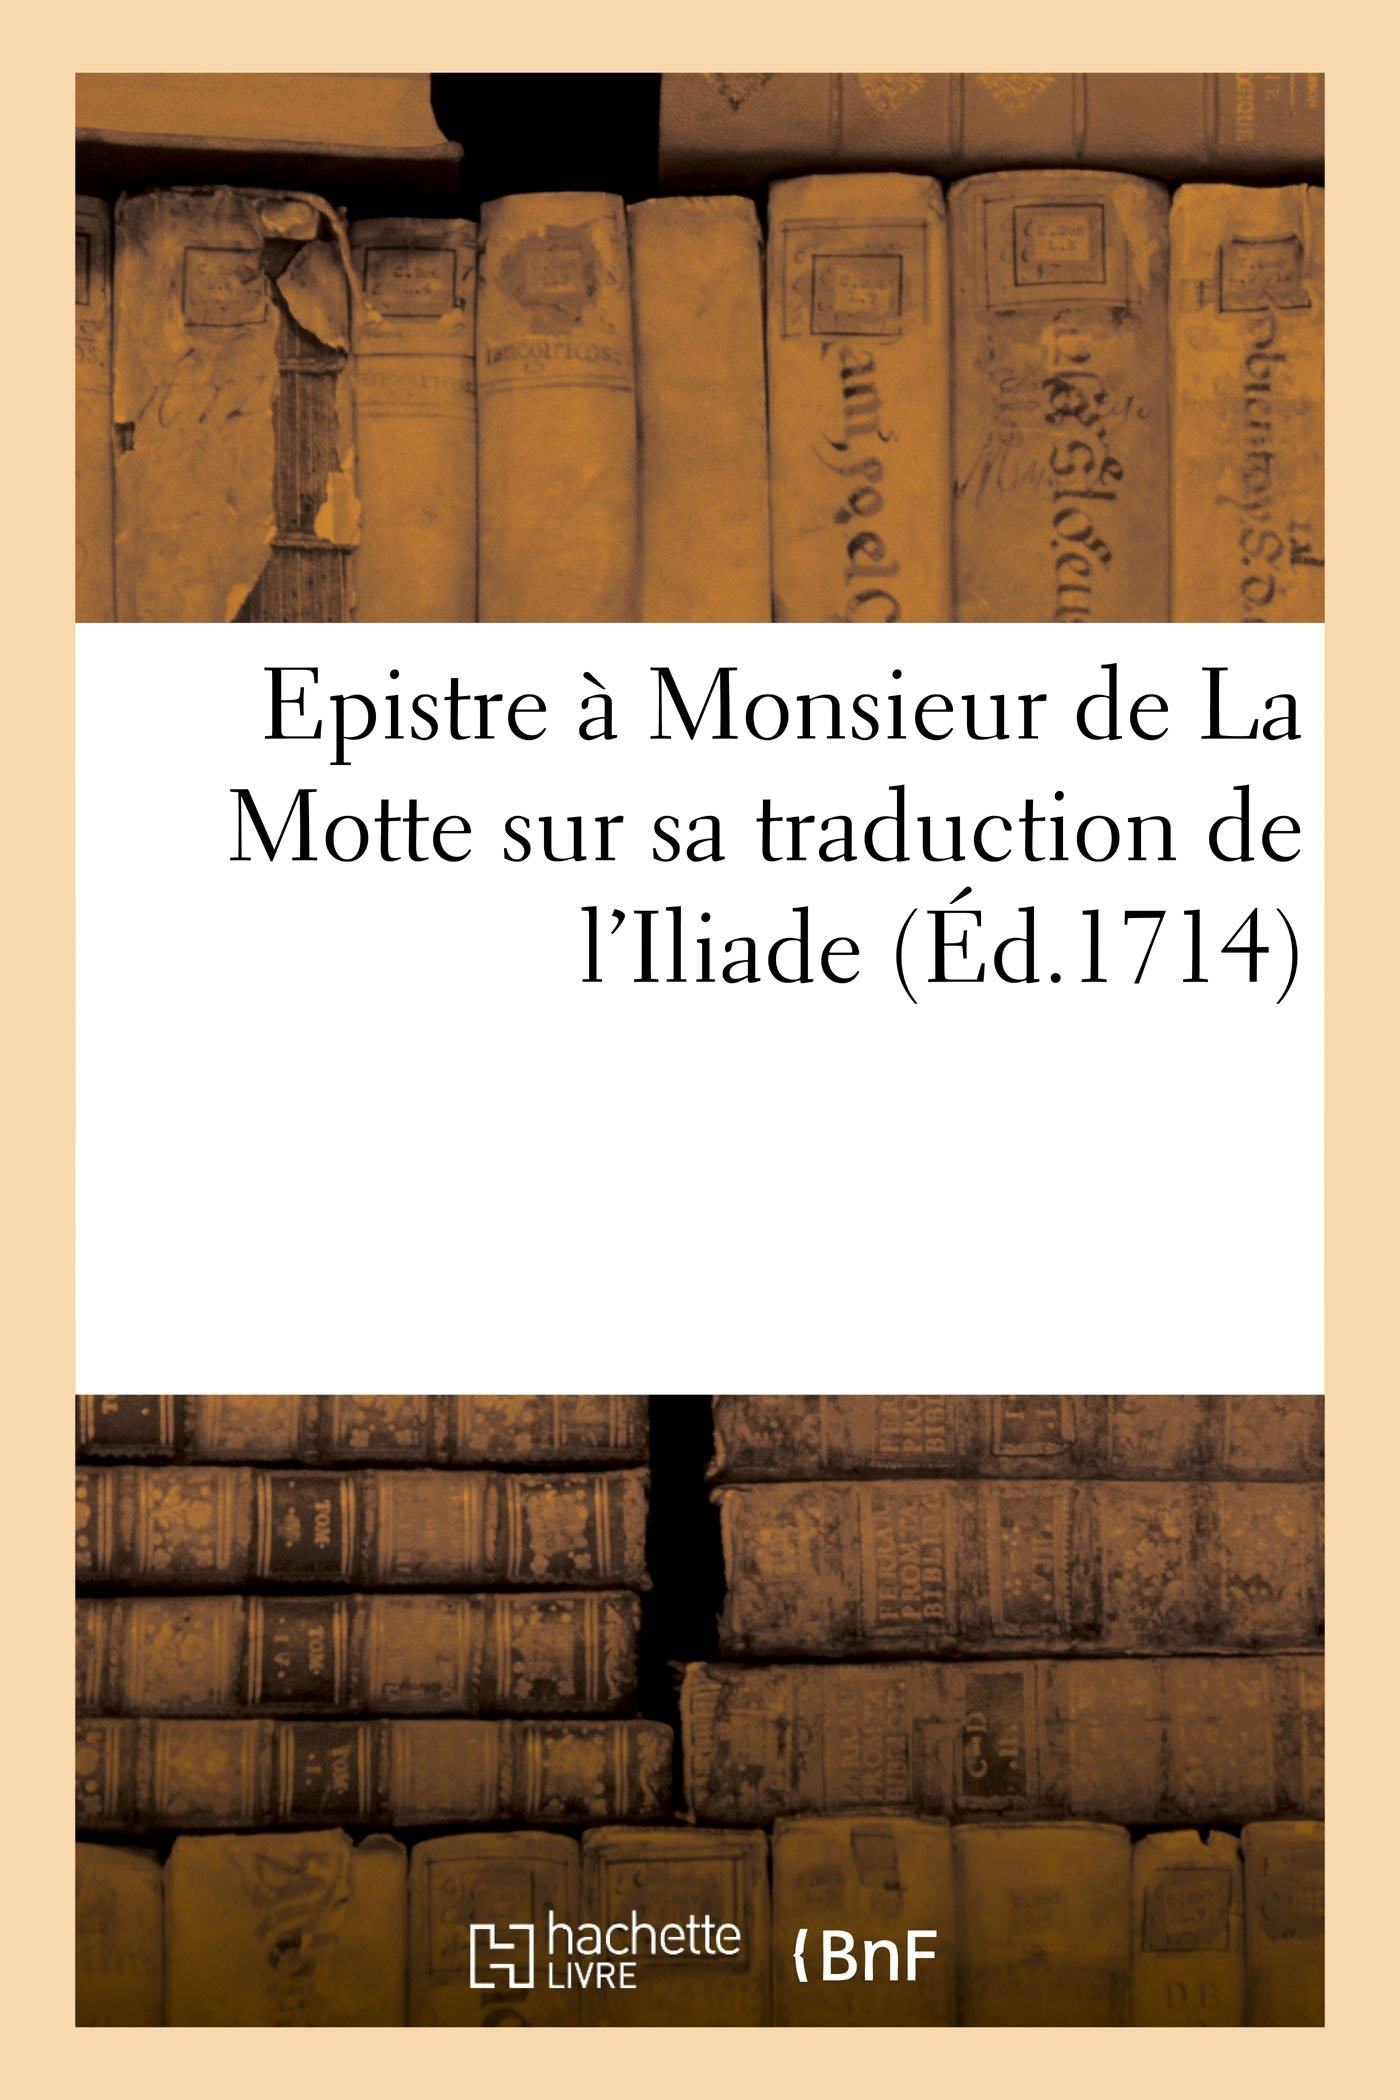 Epistre à Monsieur de La Motte sur sa traduction de l'Iliade (French Edition) pdf epub